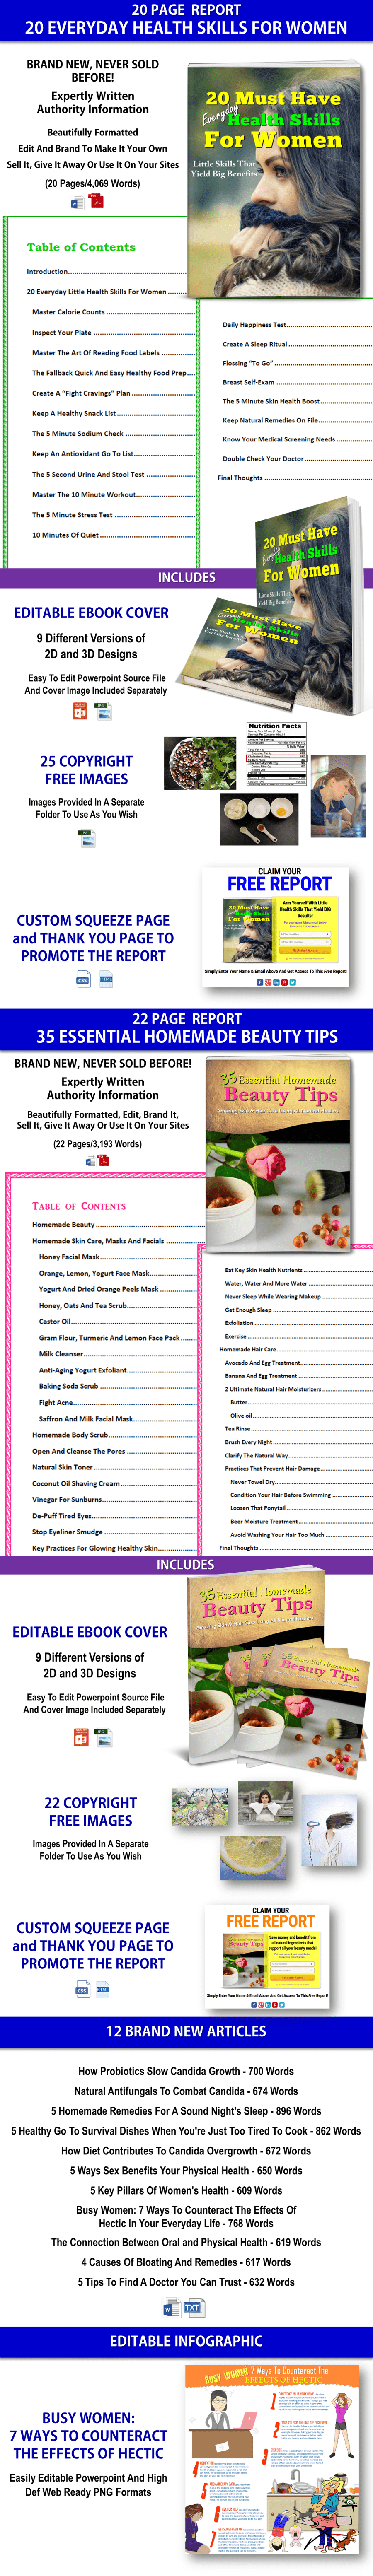 Health Skills And Homemade Beauty Tips PLR